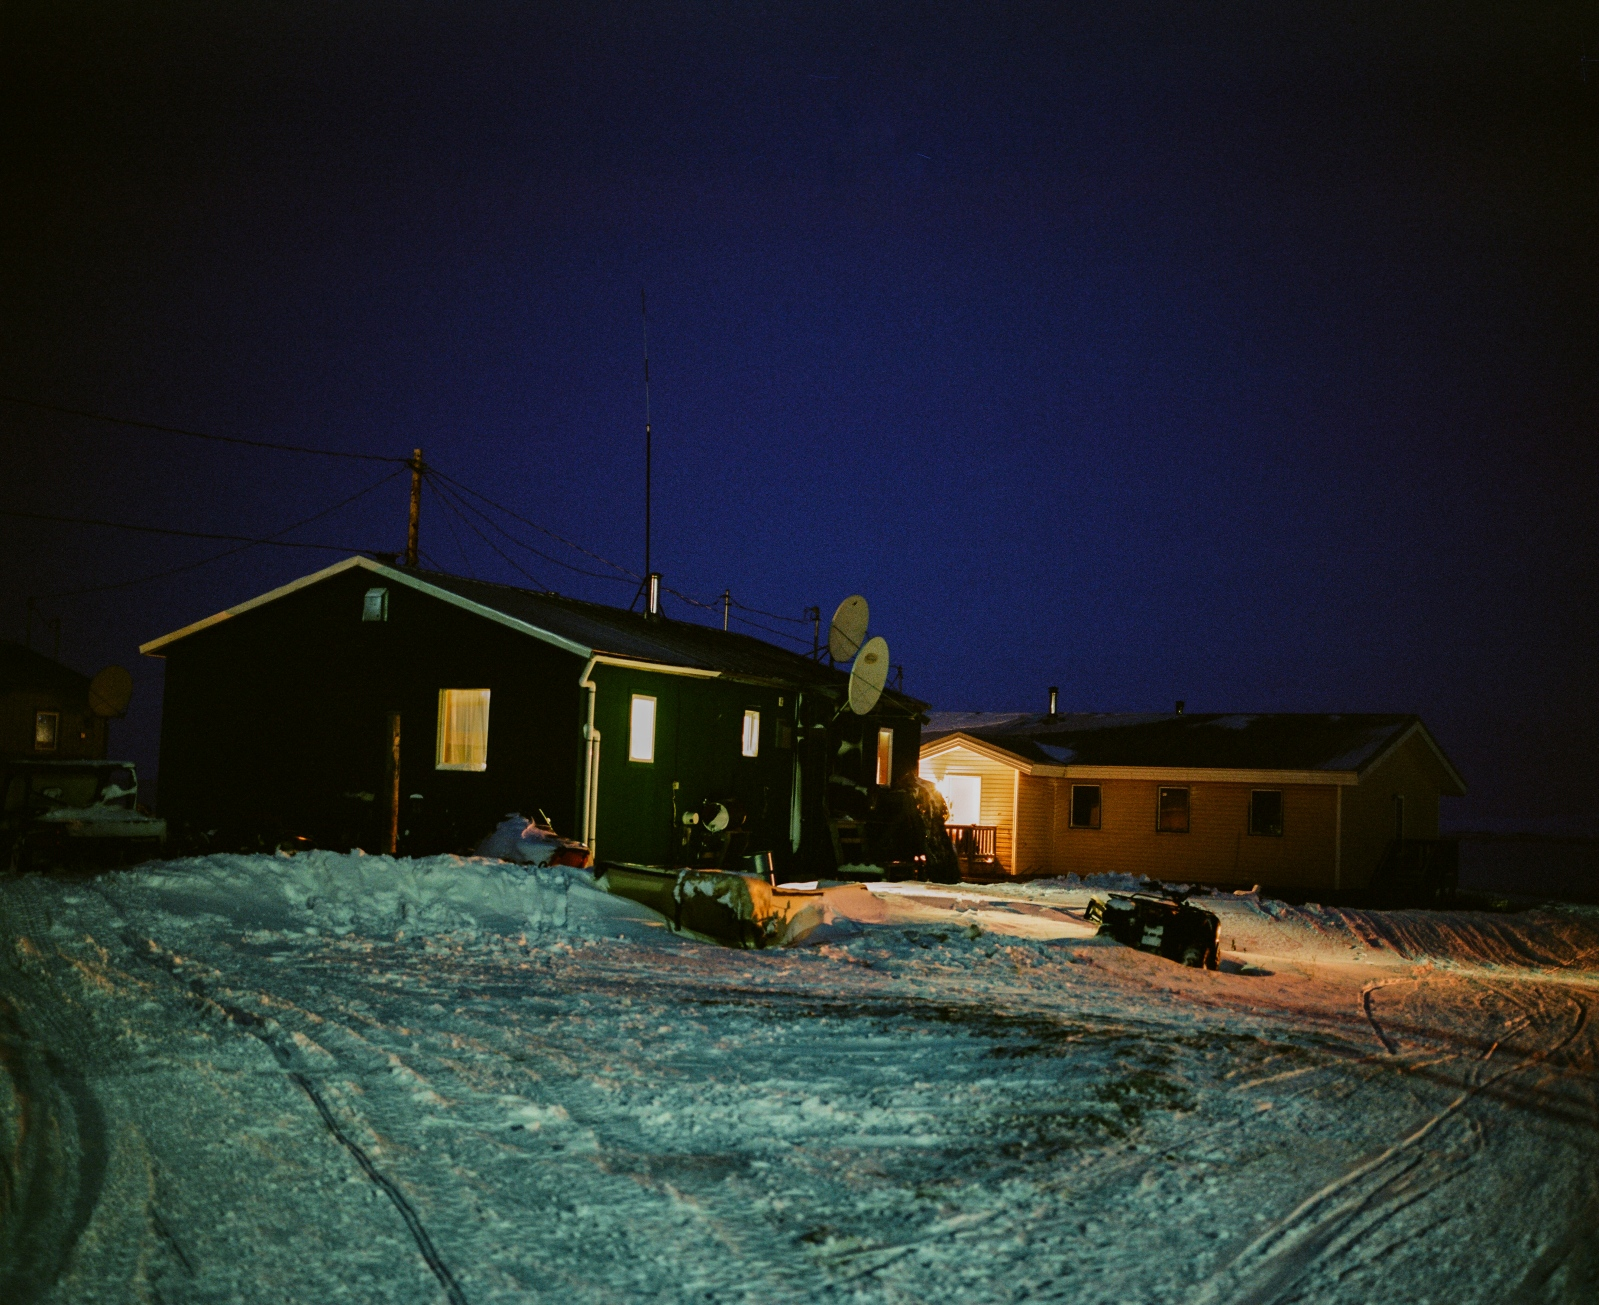 Homes in Kivalina, Alaska after dark. In the winter time, the village experiences only a few hours of light each day and less than and hour on its darkest days of the year.